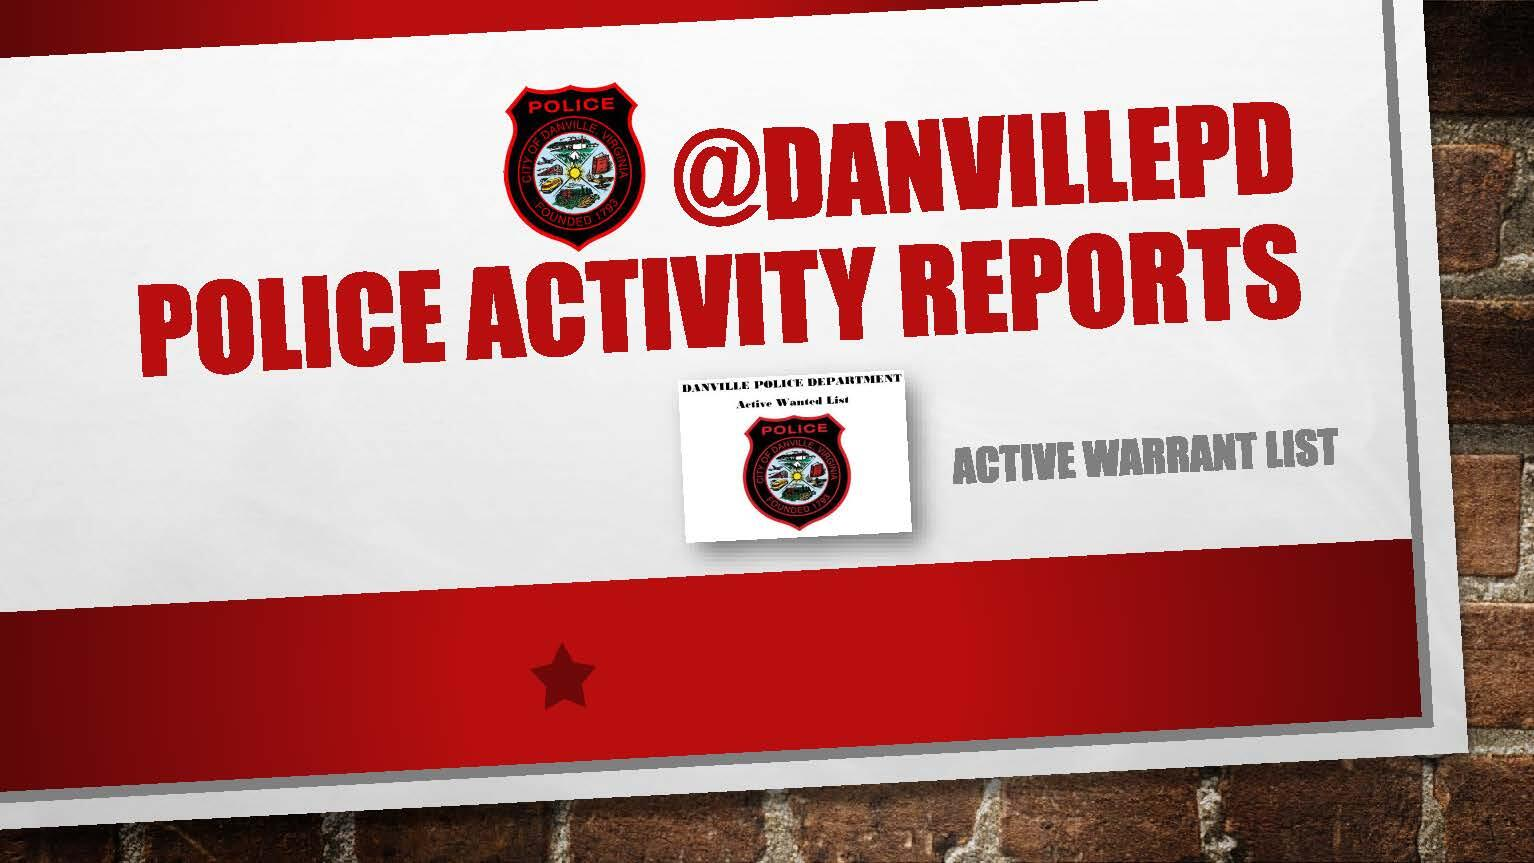 Active Warrant List Now Available (City of Danville Police